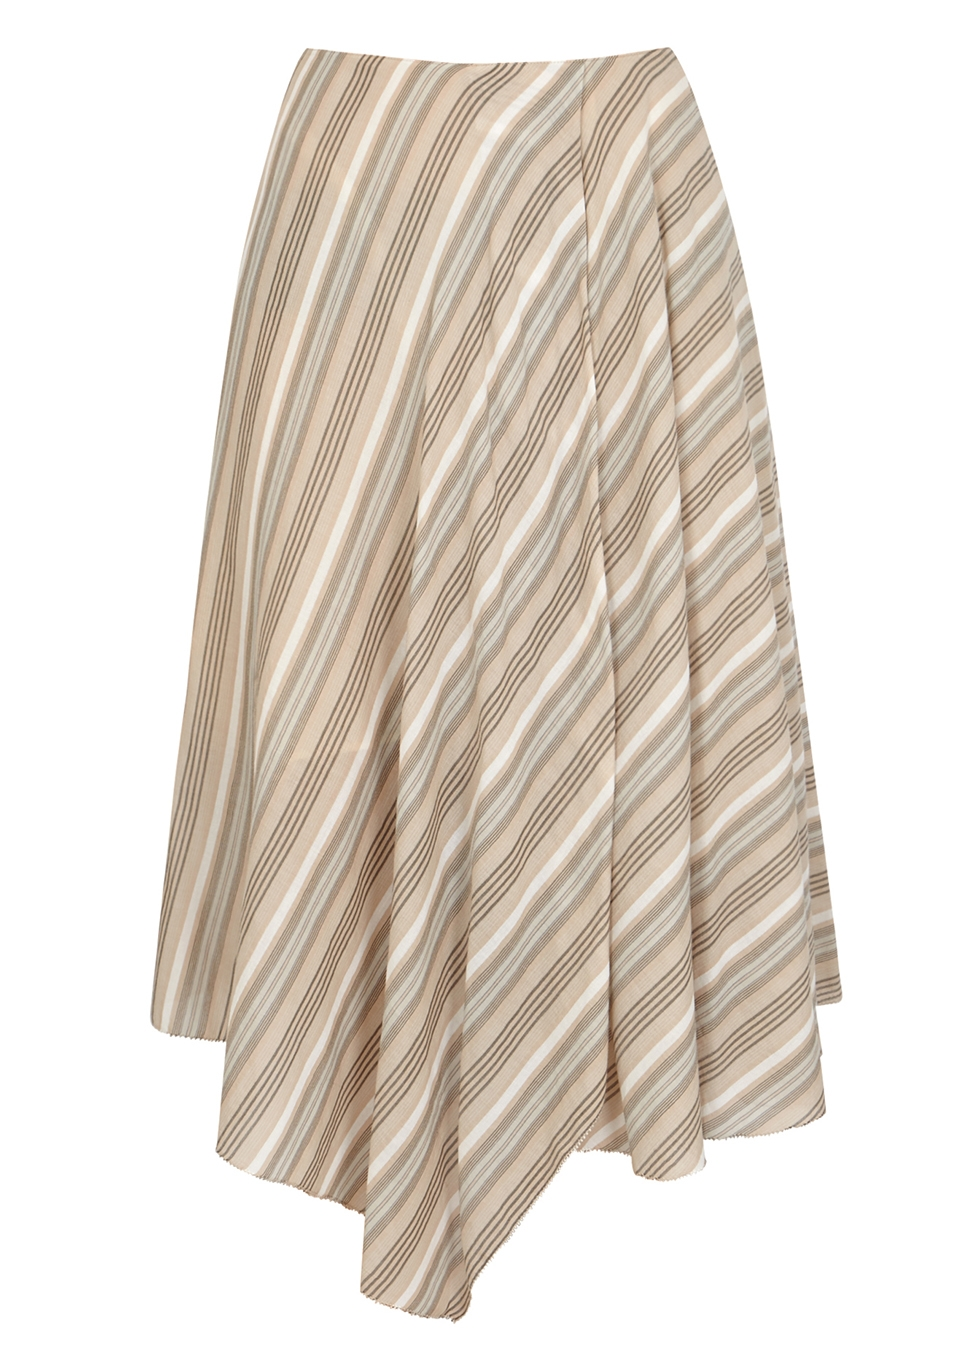 Striped cotton voile skirt - Acne Studios